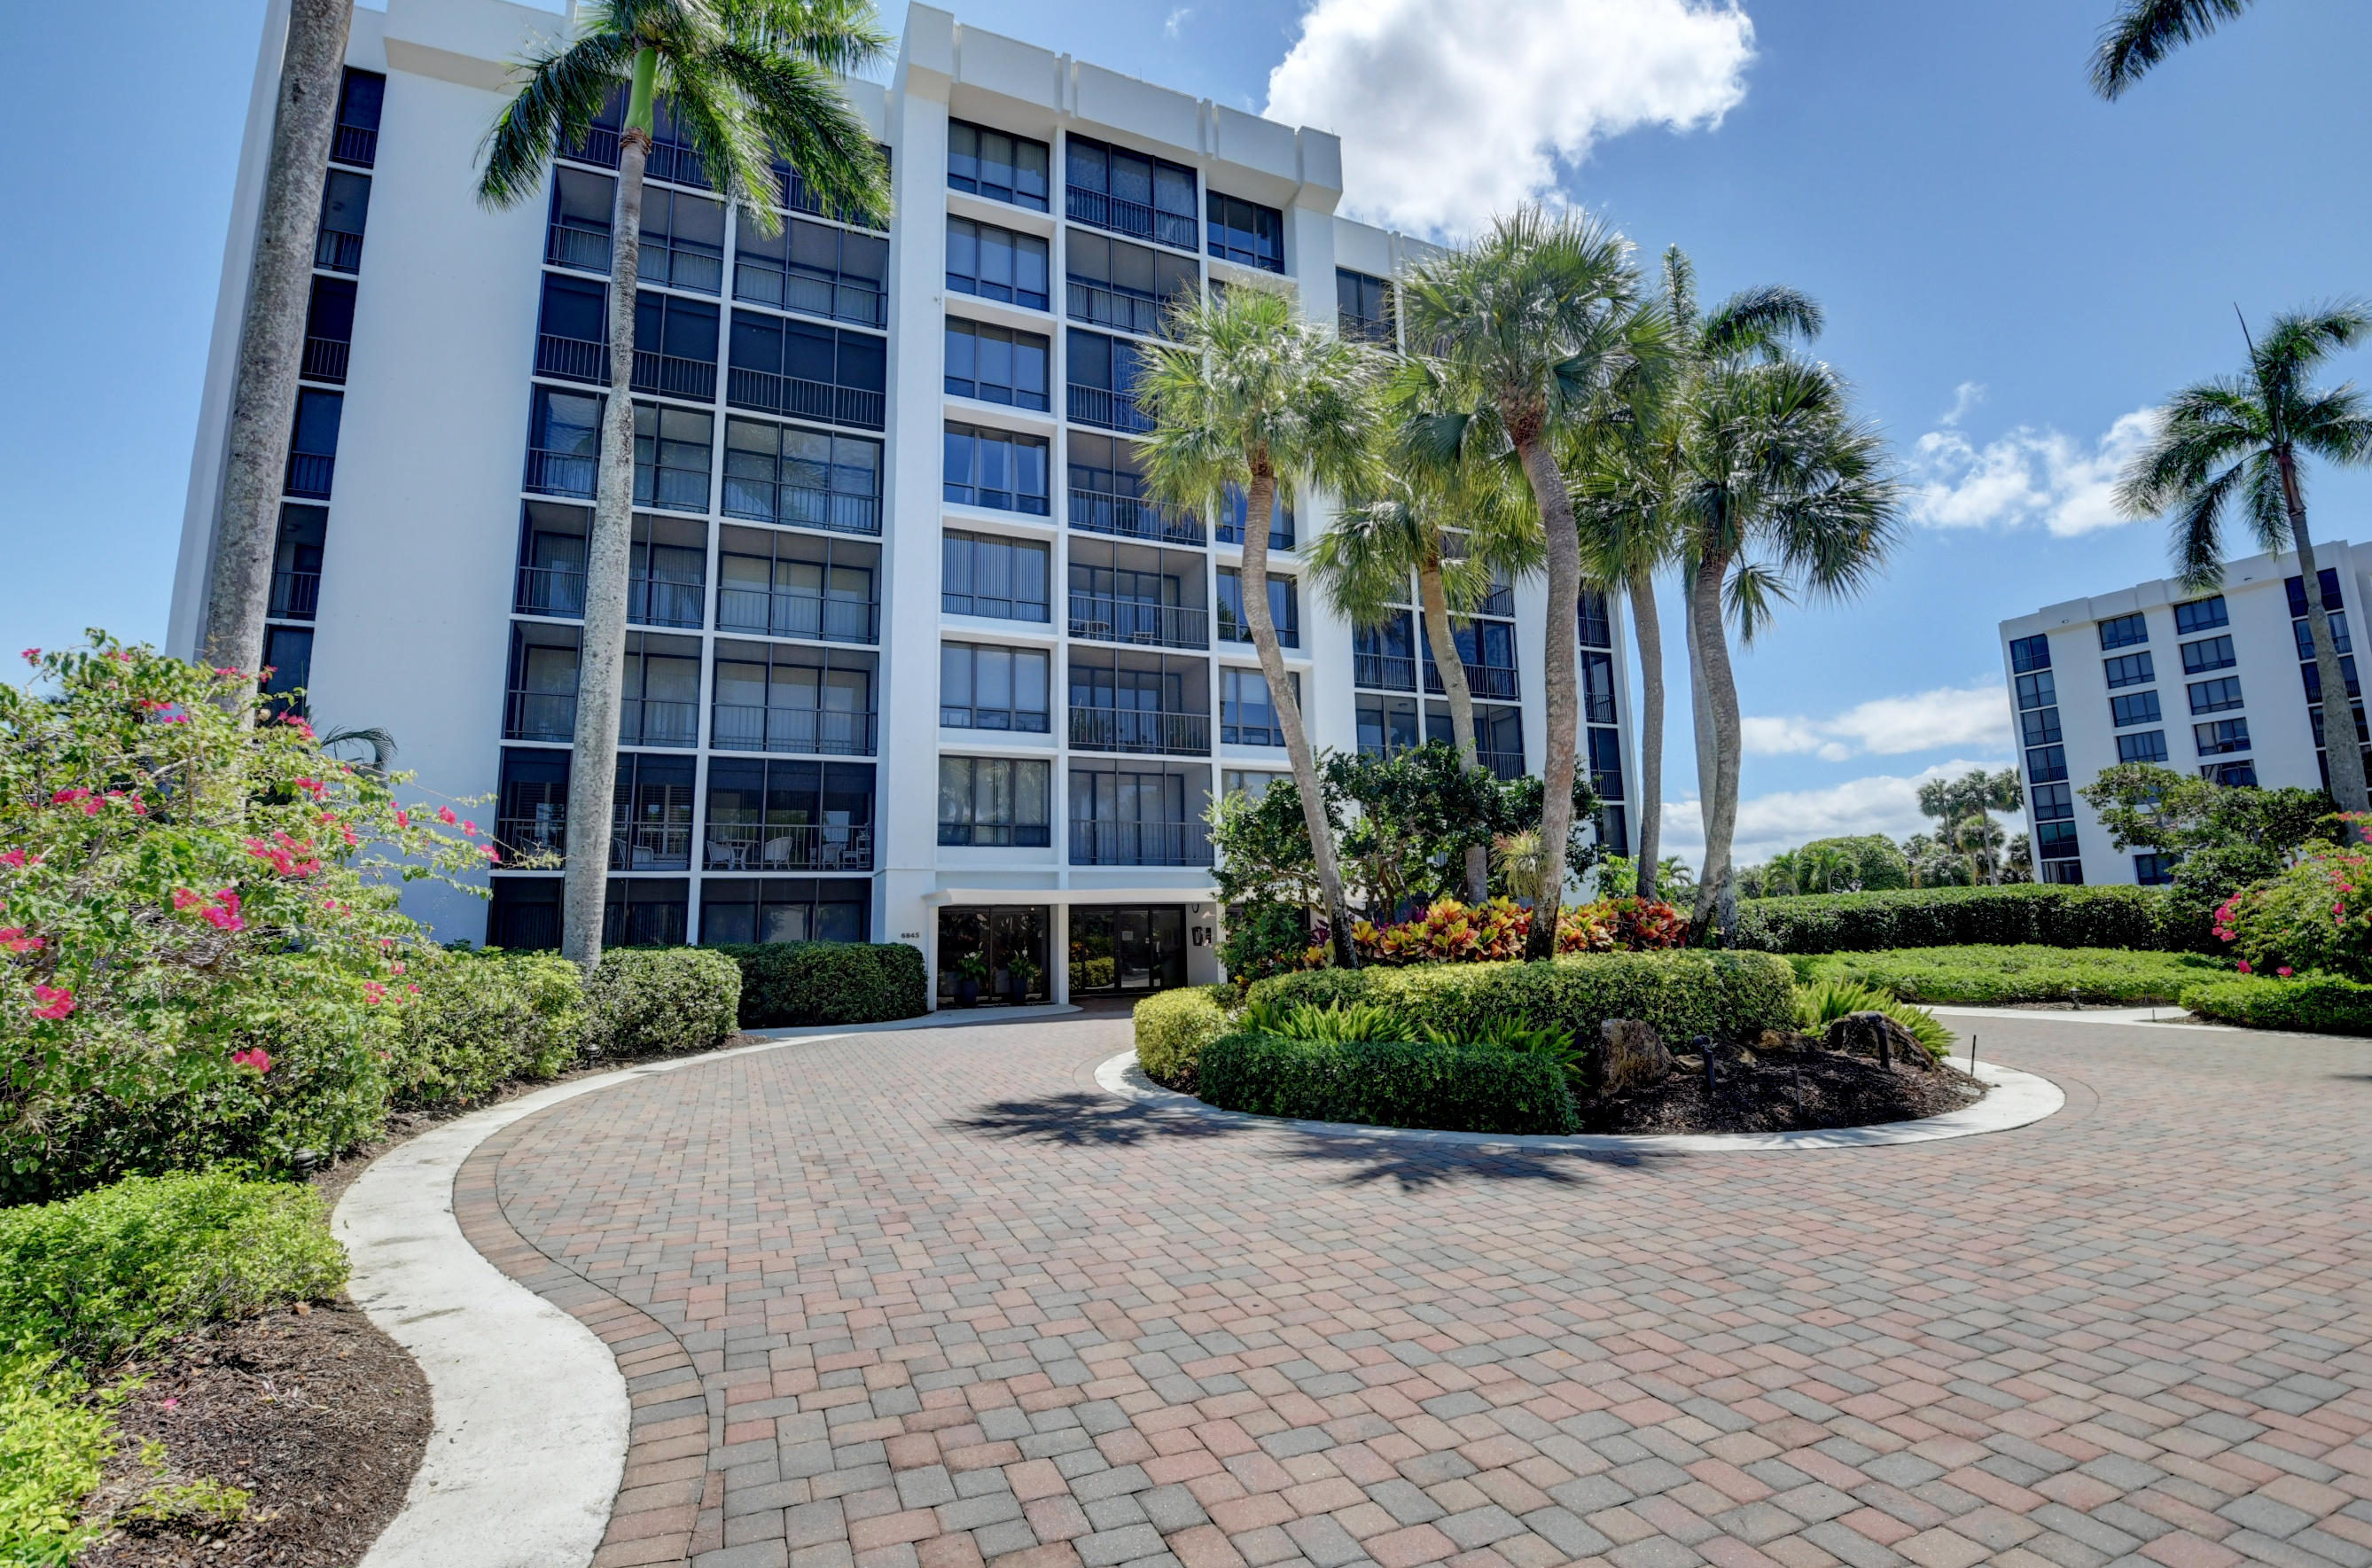 6845  Willow Wood Drive 3031 For Sale 10714329, FL